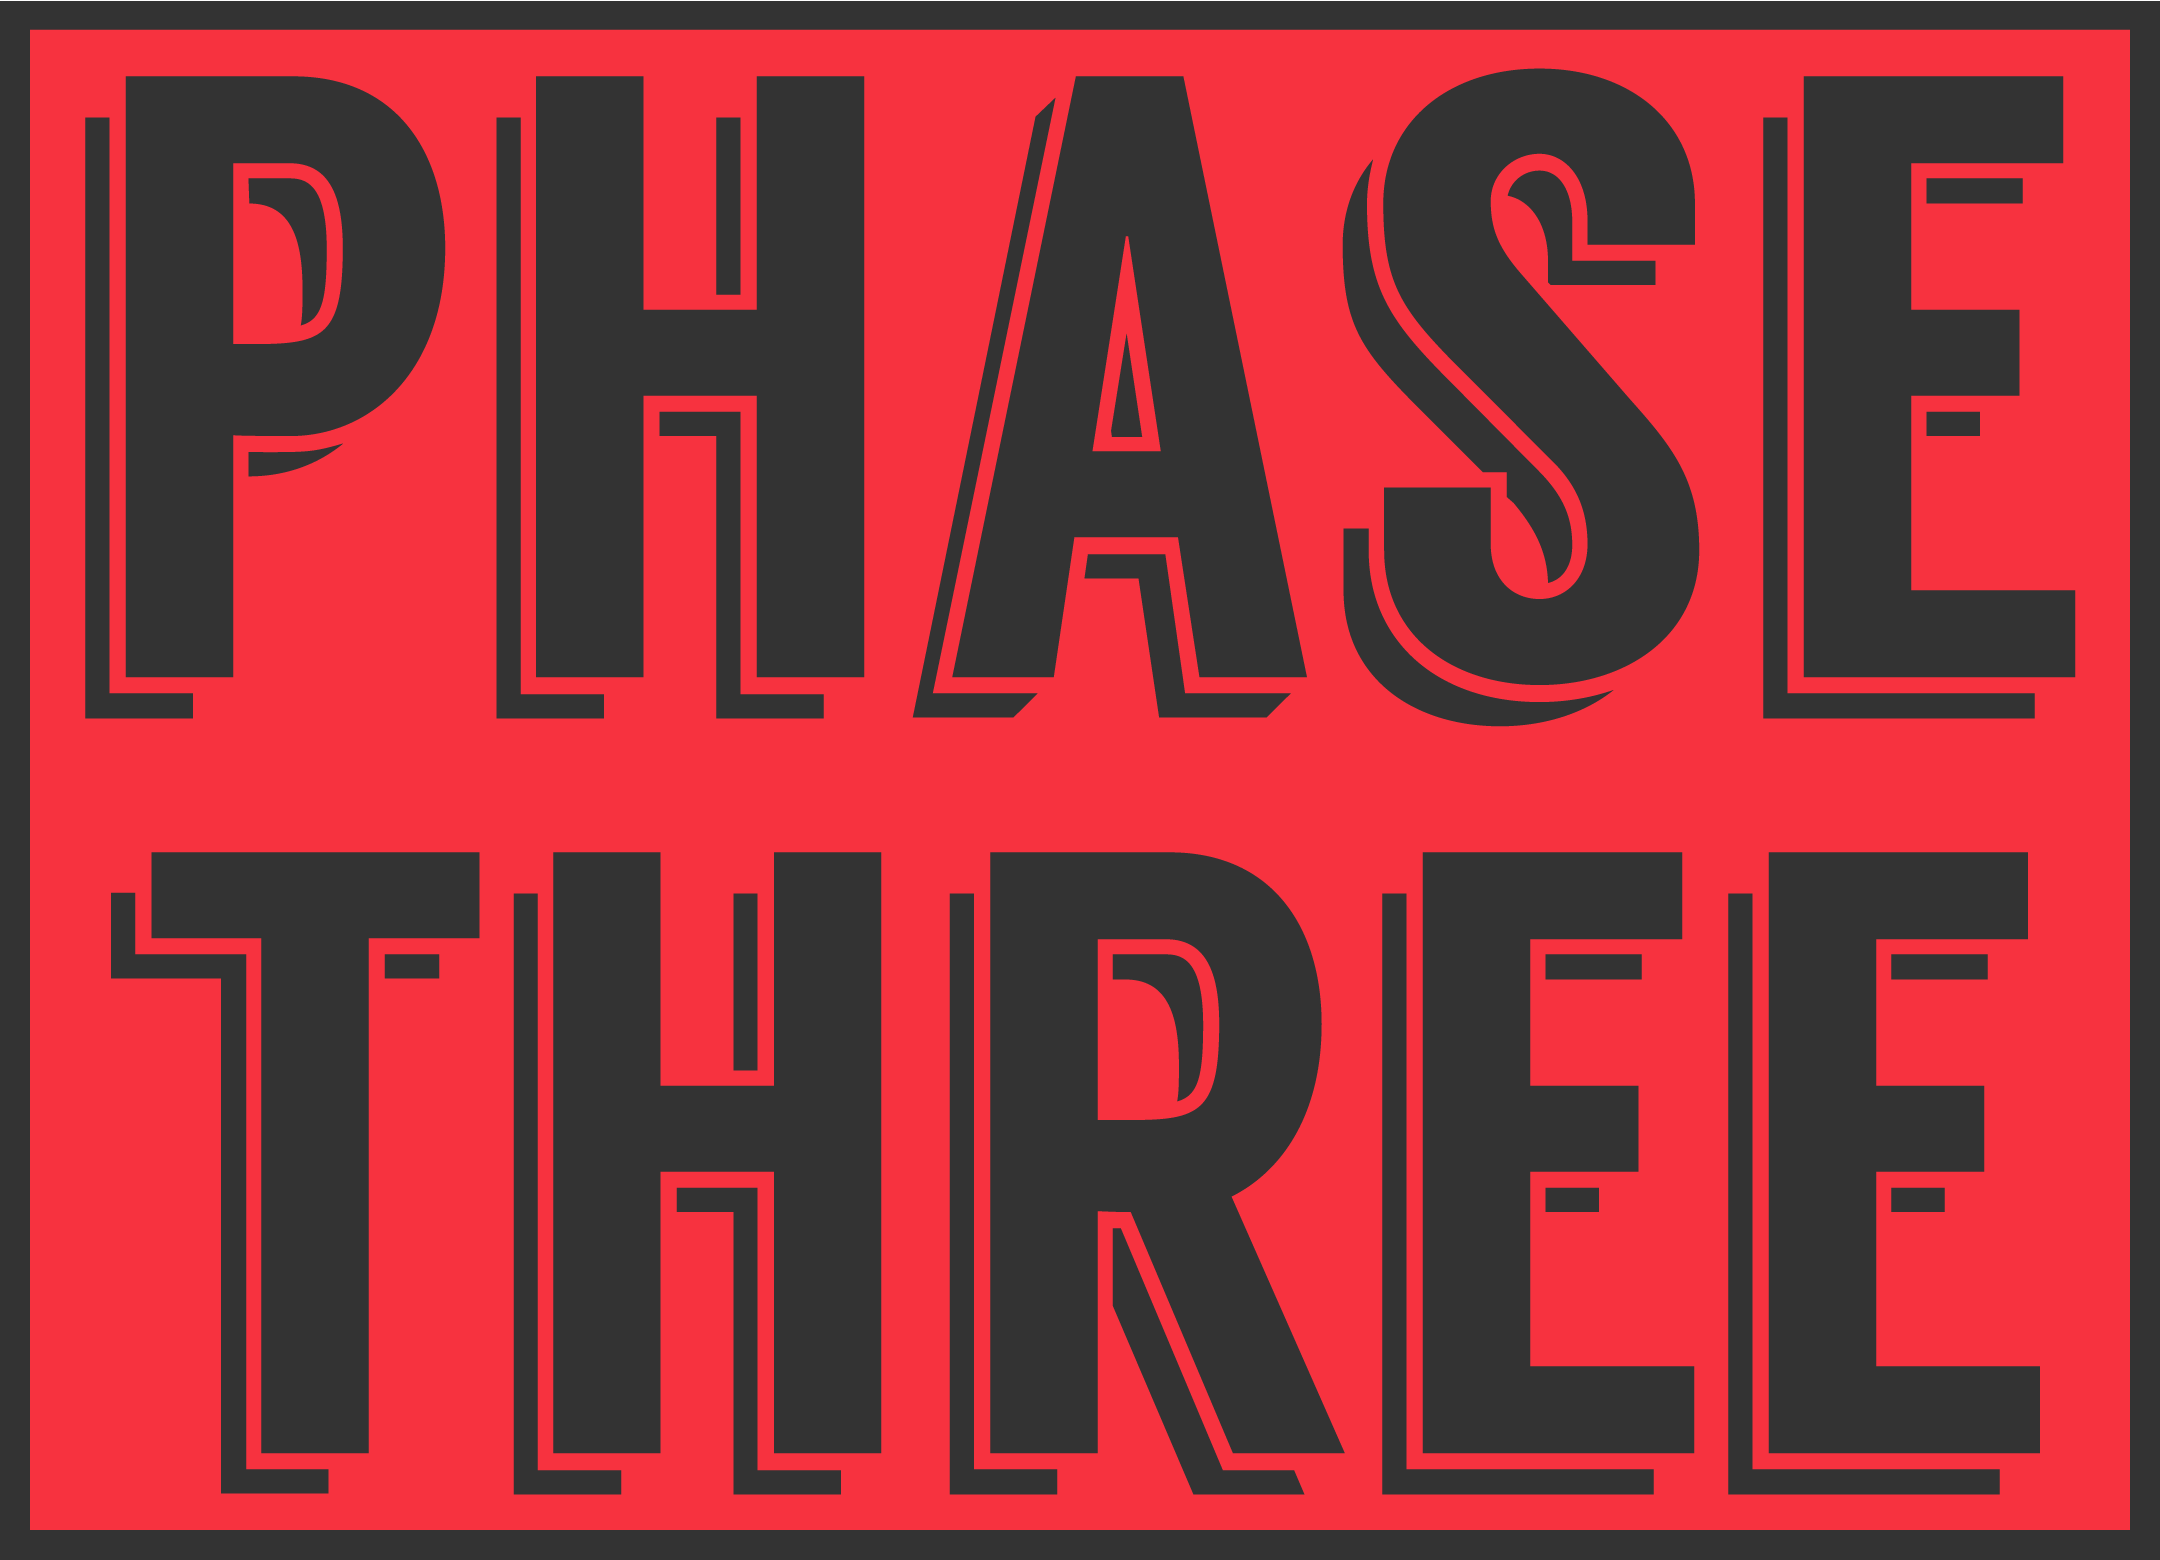 Complete Phase Two prior to entering Phase Three.